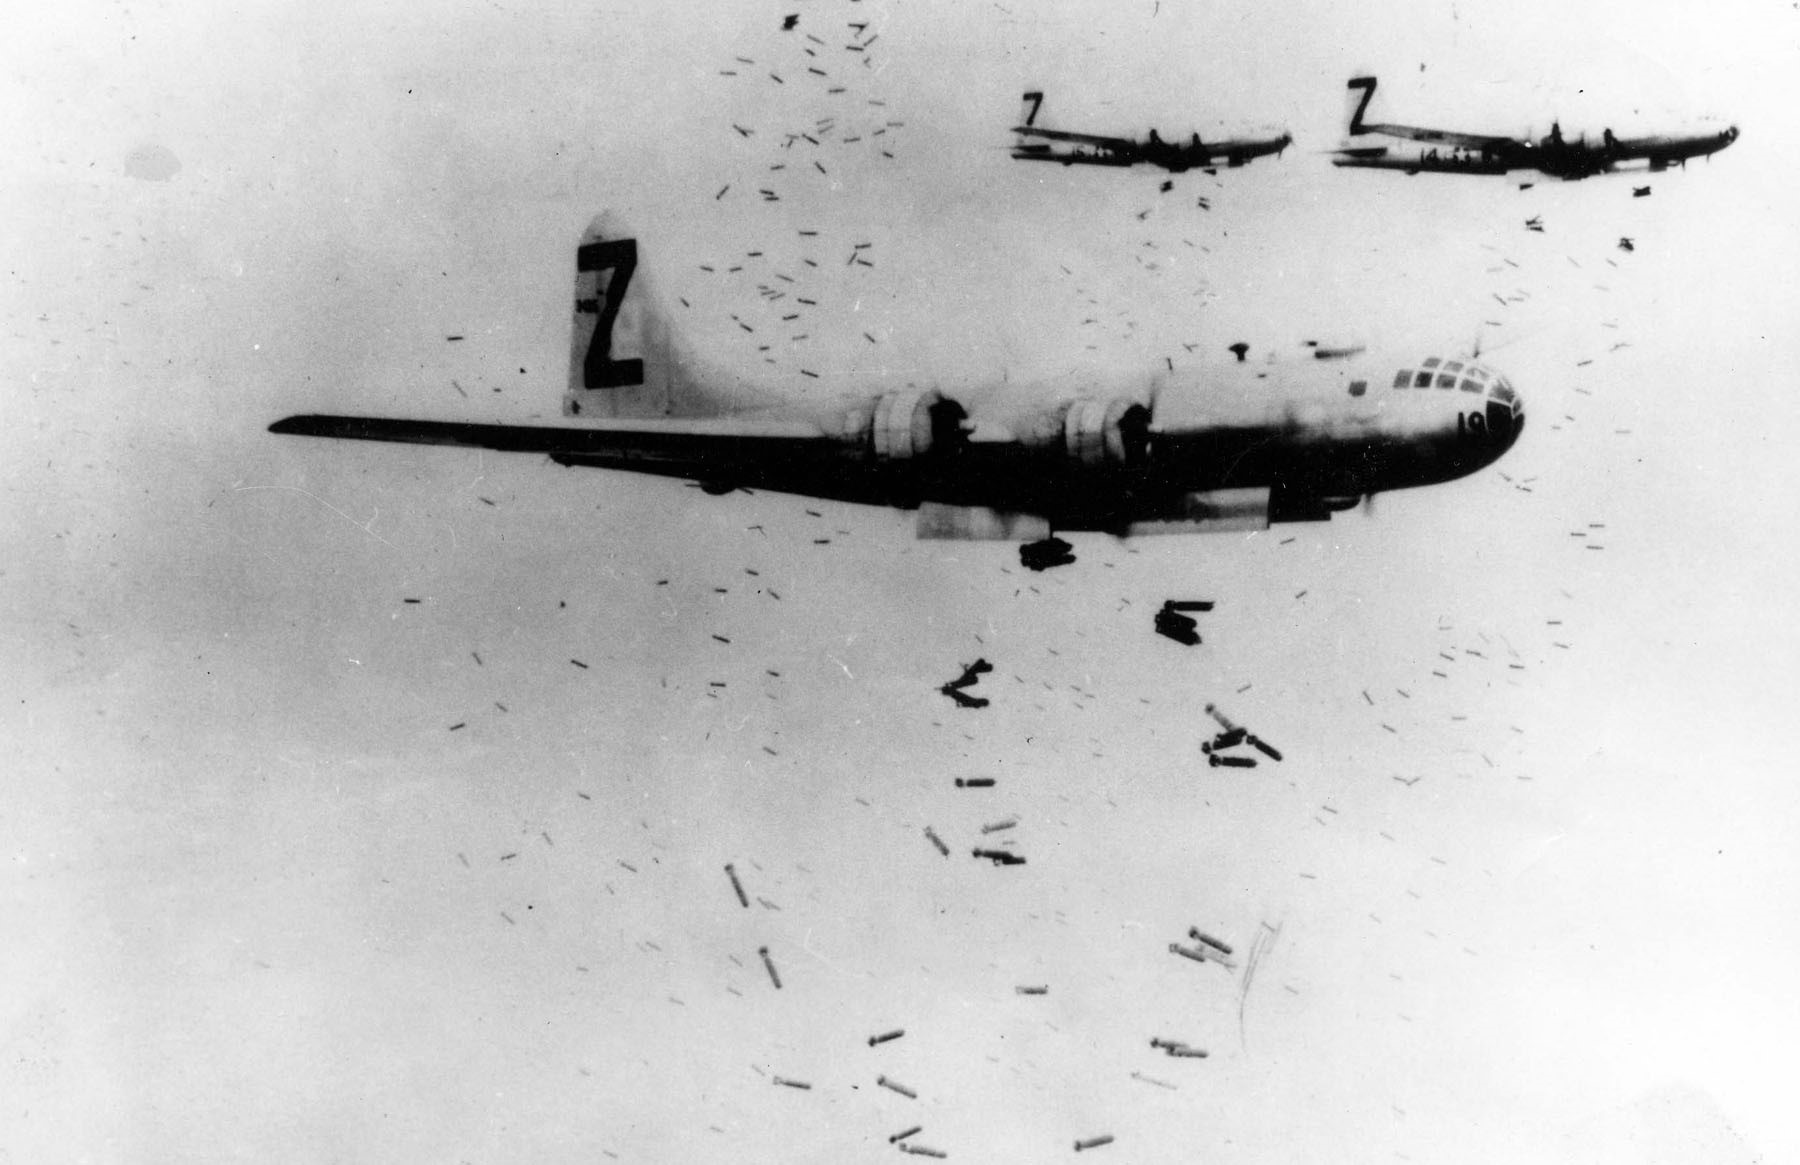 U.S. B-29 bombers drop incendiary bombs on Japan in 1945.